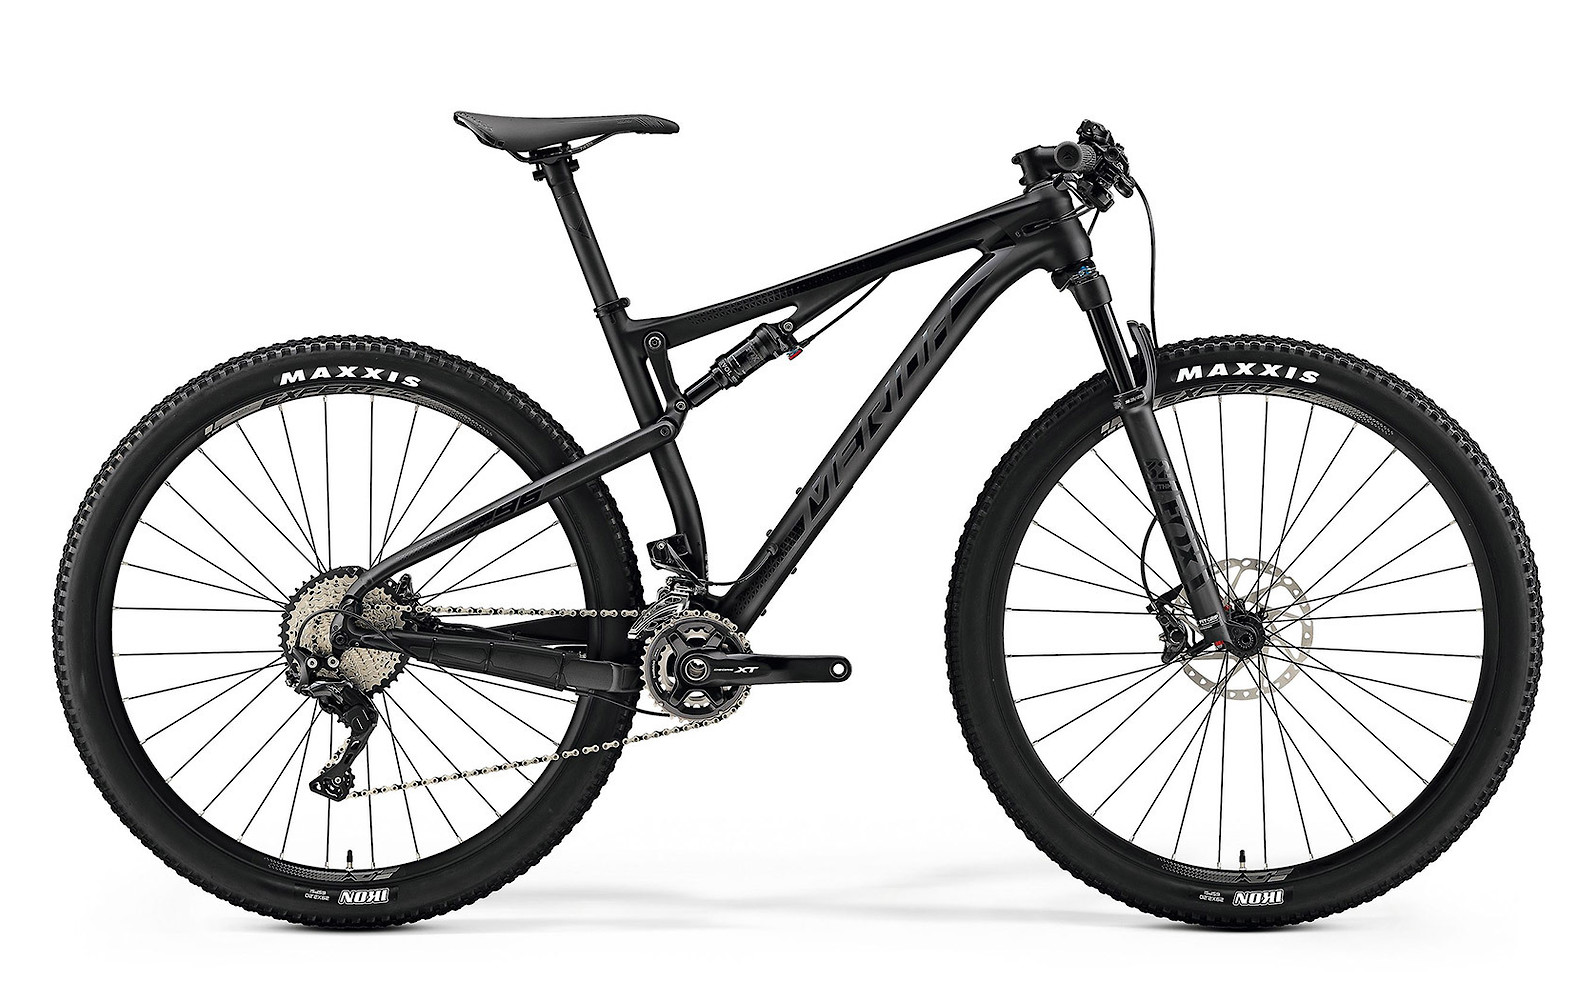 2019 Merida Ninety-Six XT Bike